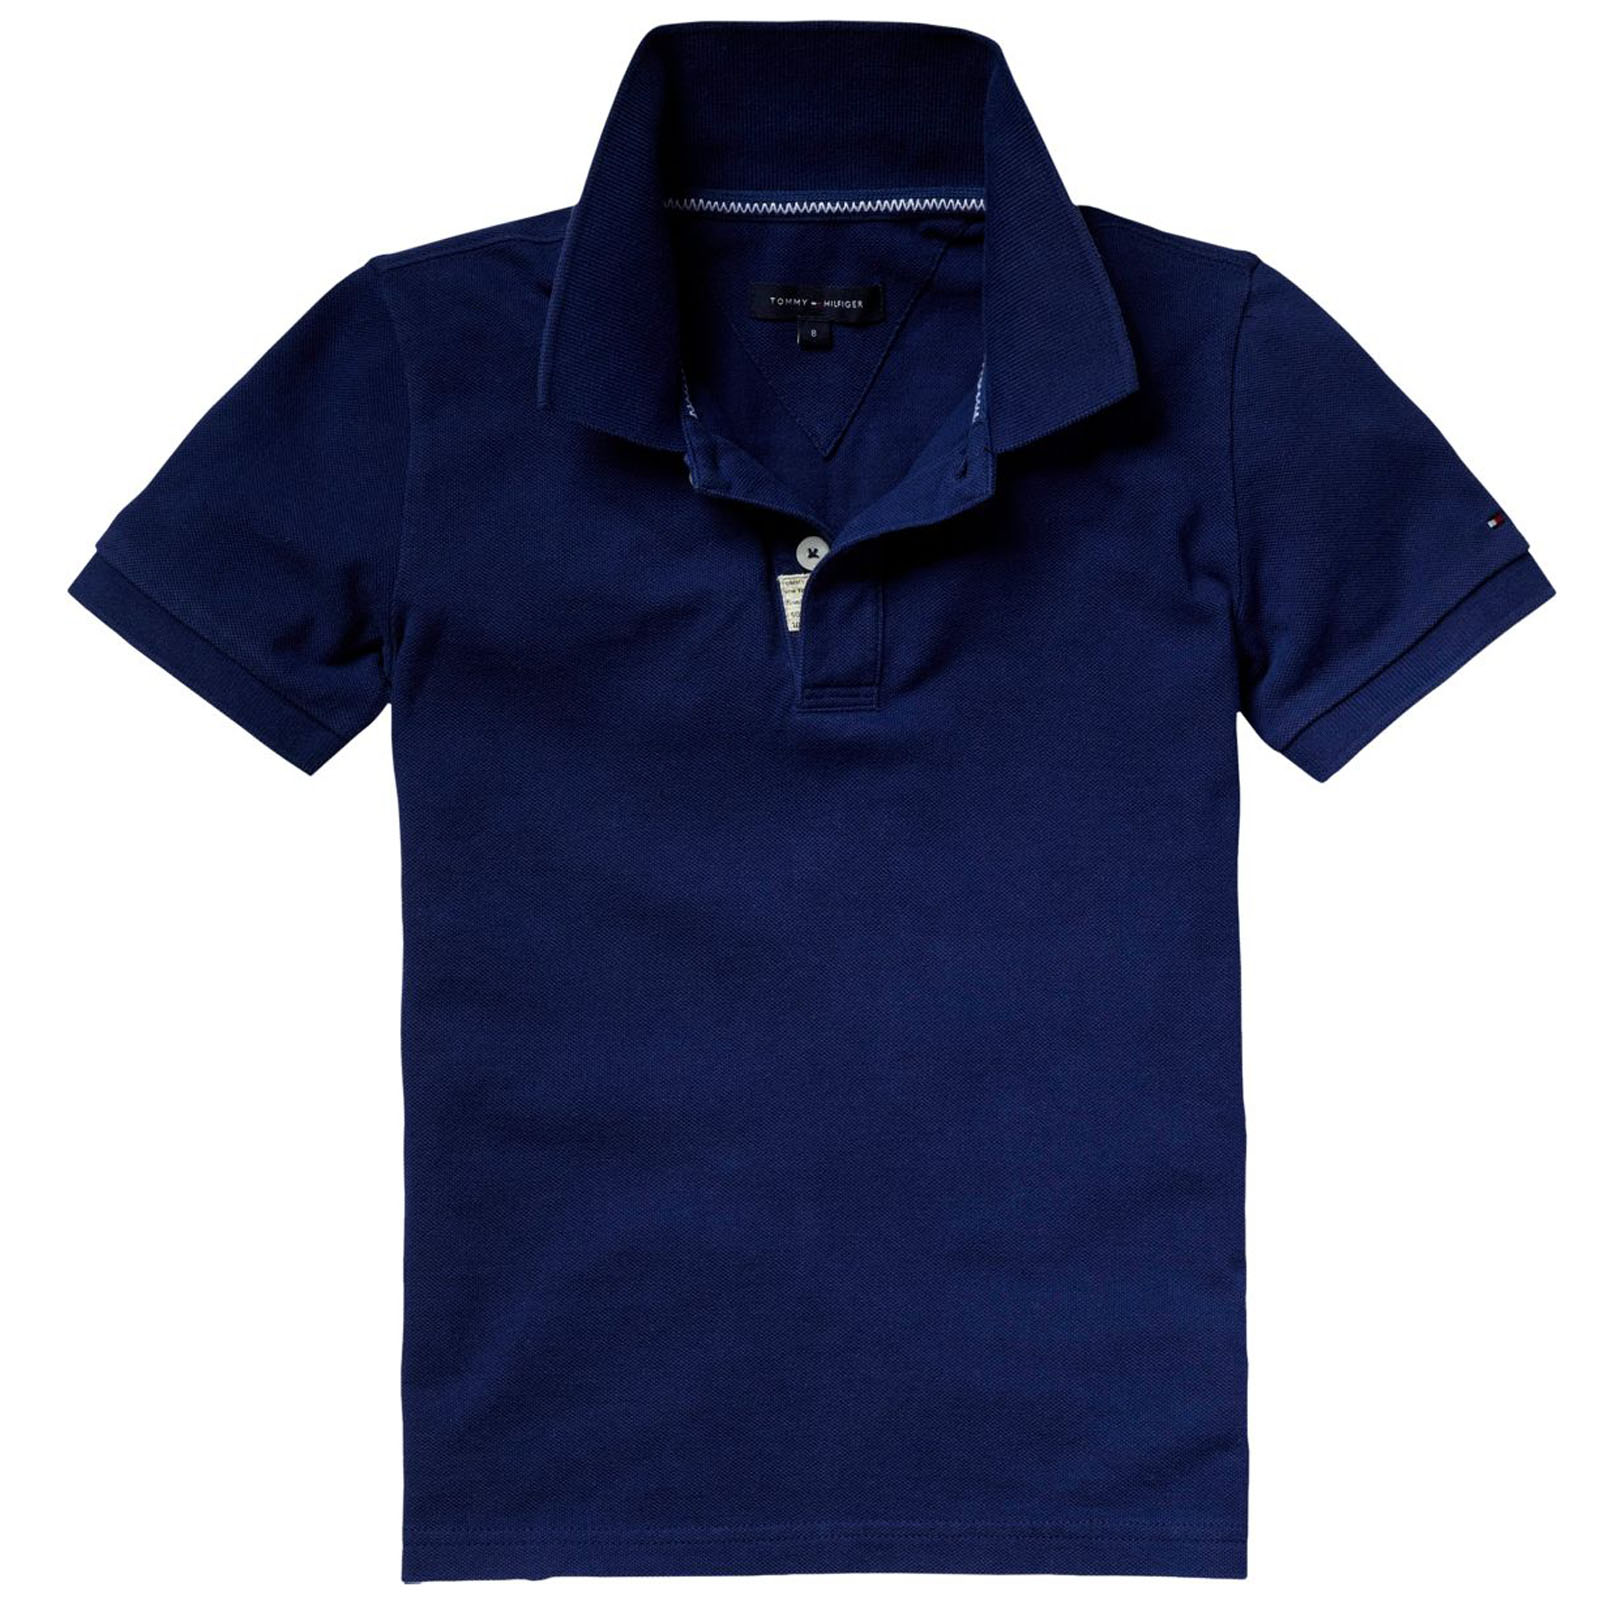 Pics Of Polo Shirts - ClipArt Best